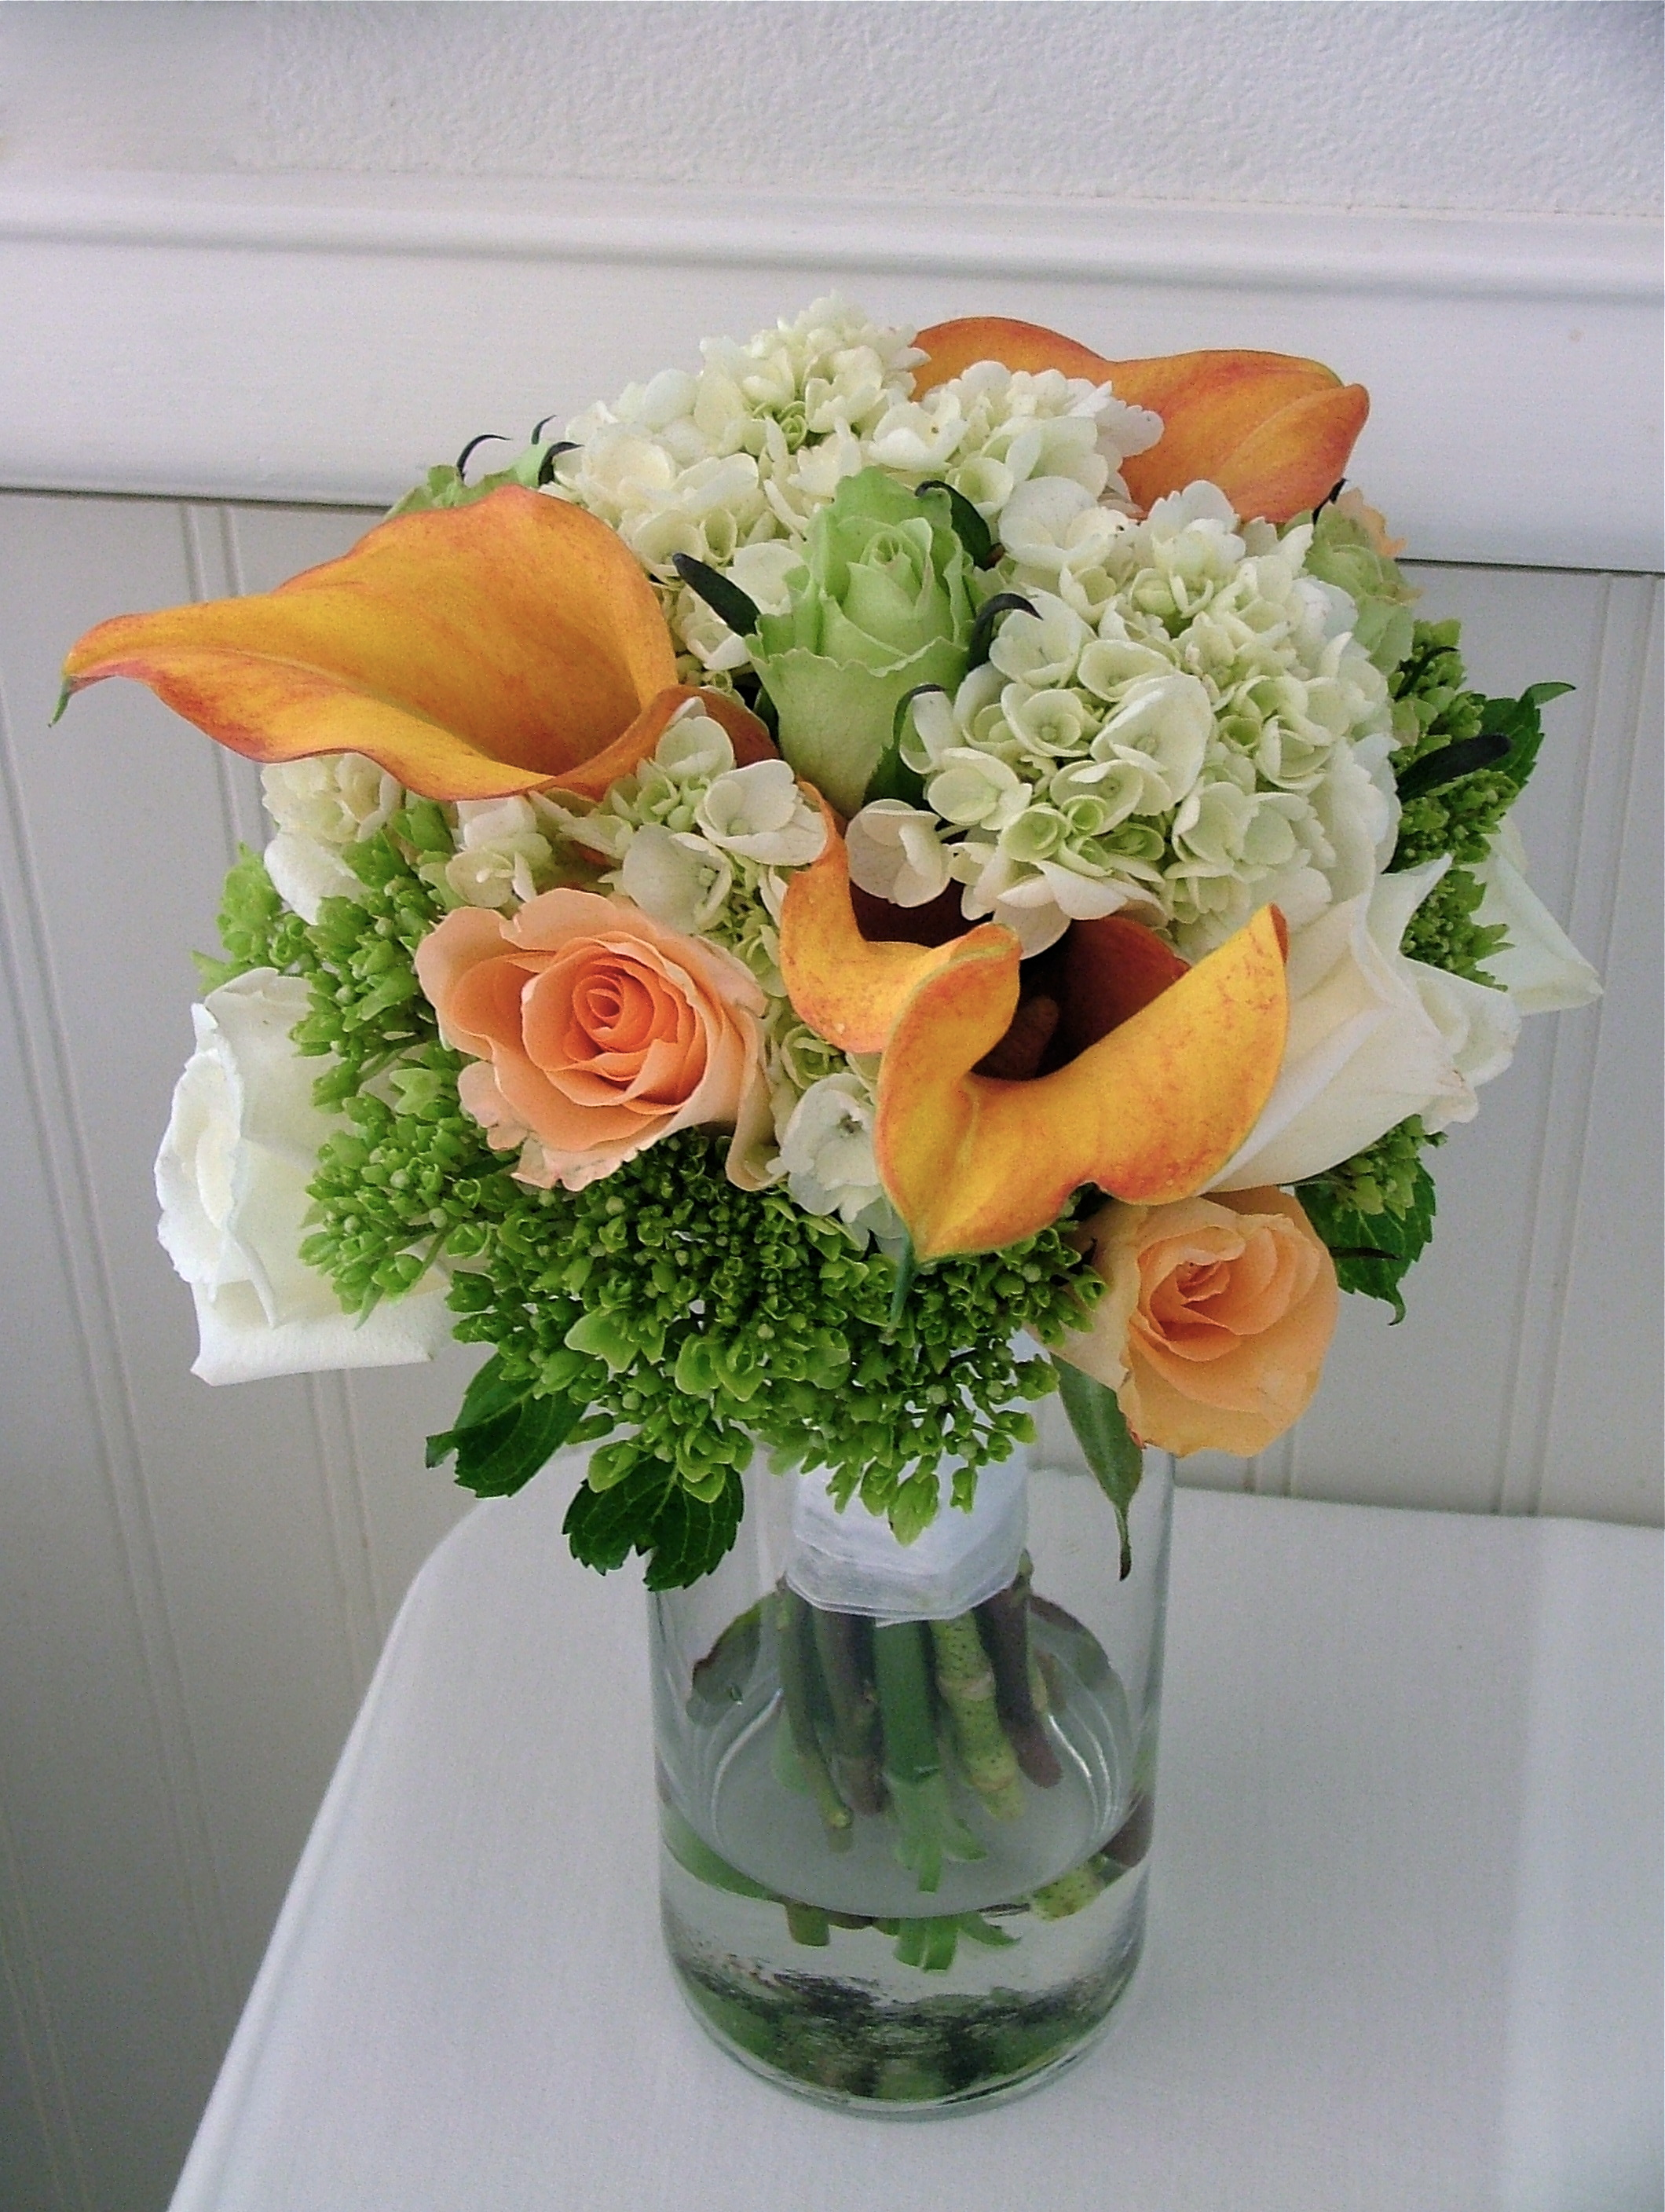 Rose Hydrangea, calla, bouquet by Jina Lee